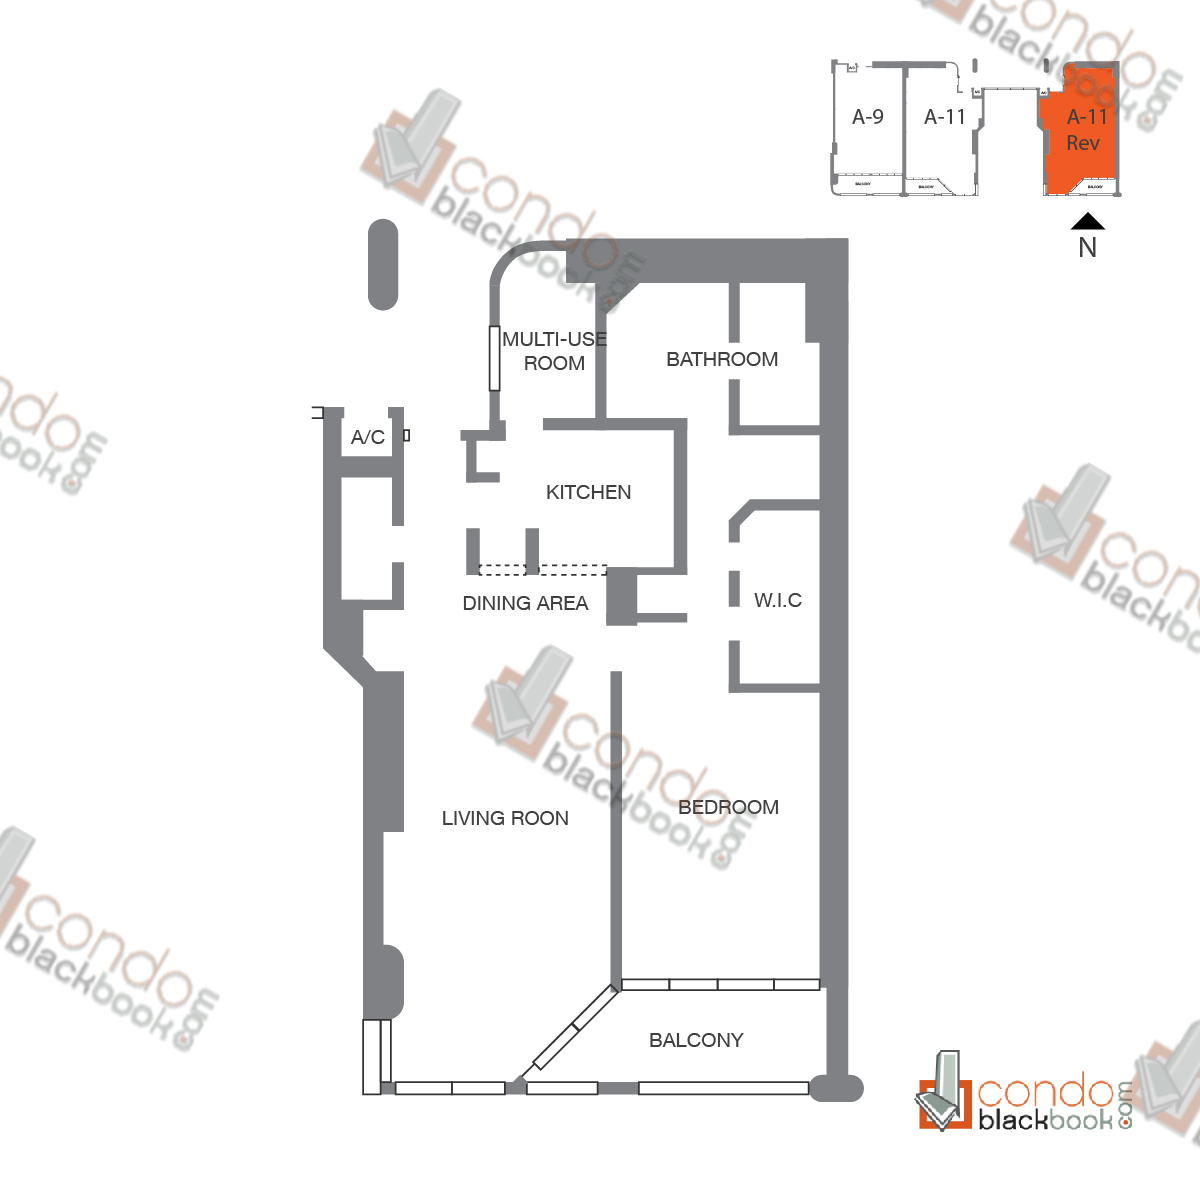 Floor plan for The Grand Arts & Entertainment District Miami, model Unit 46 (11-30), line A-1146 to A-1546, A-2346 to A-3046, 1/1.5 bedrooms, 1,138 sq ft